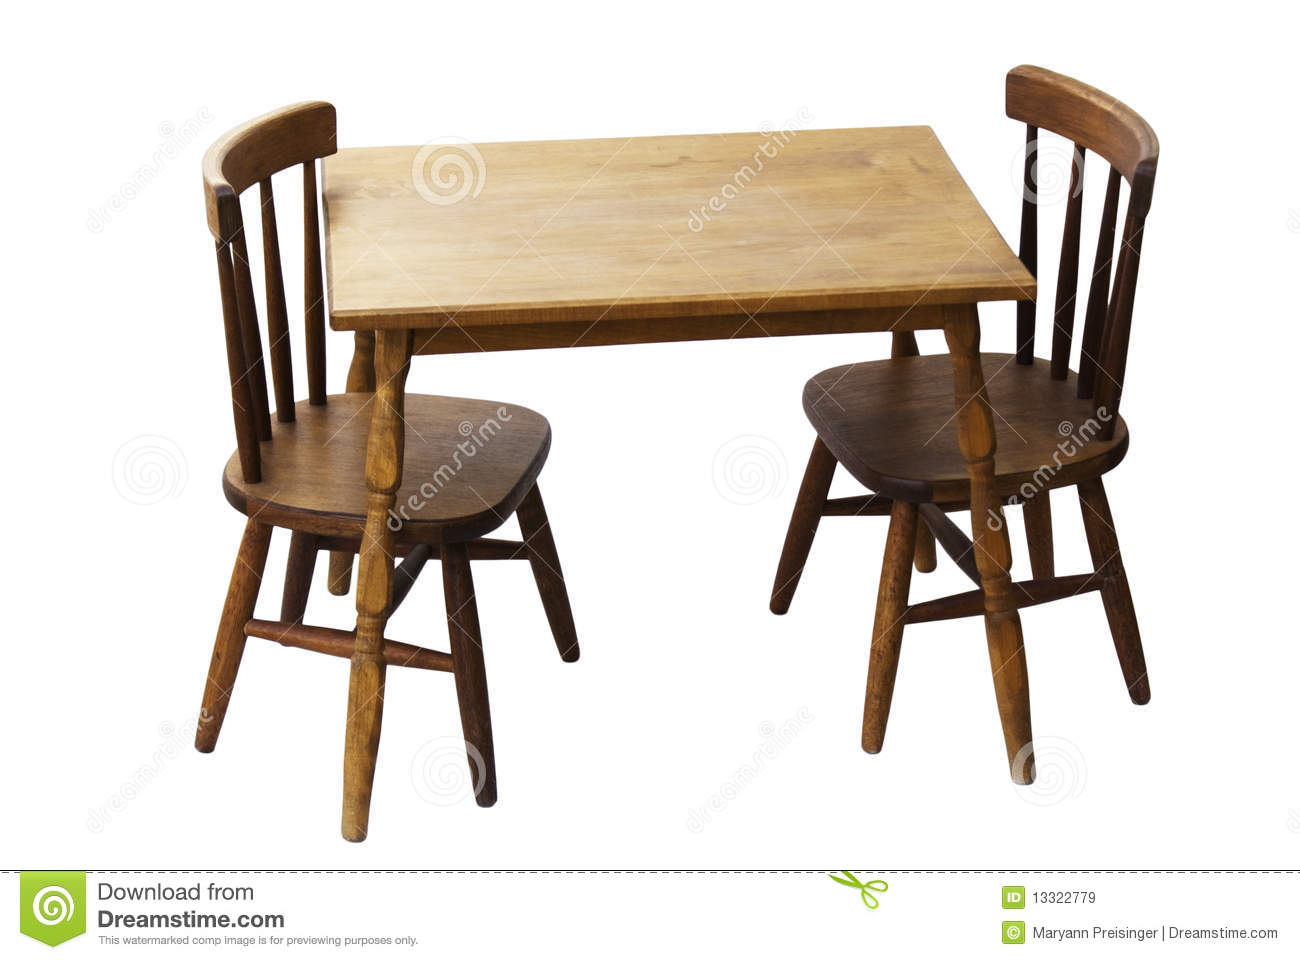 Children S Child Wood Table And Chairs Isolated Stock Image Image Of Vintage Playroom 13322779